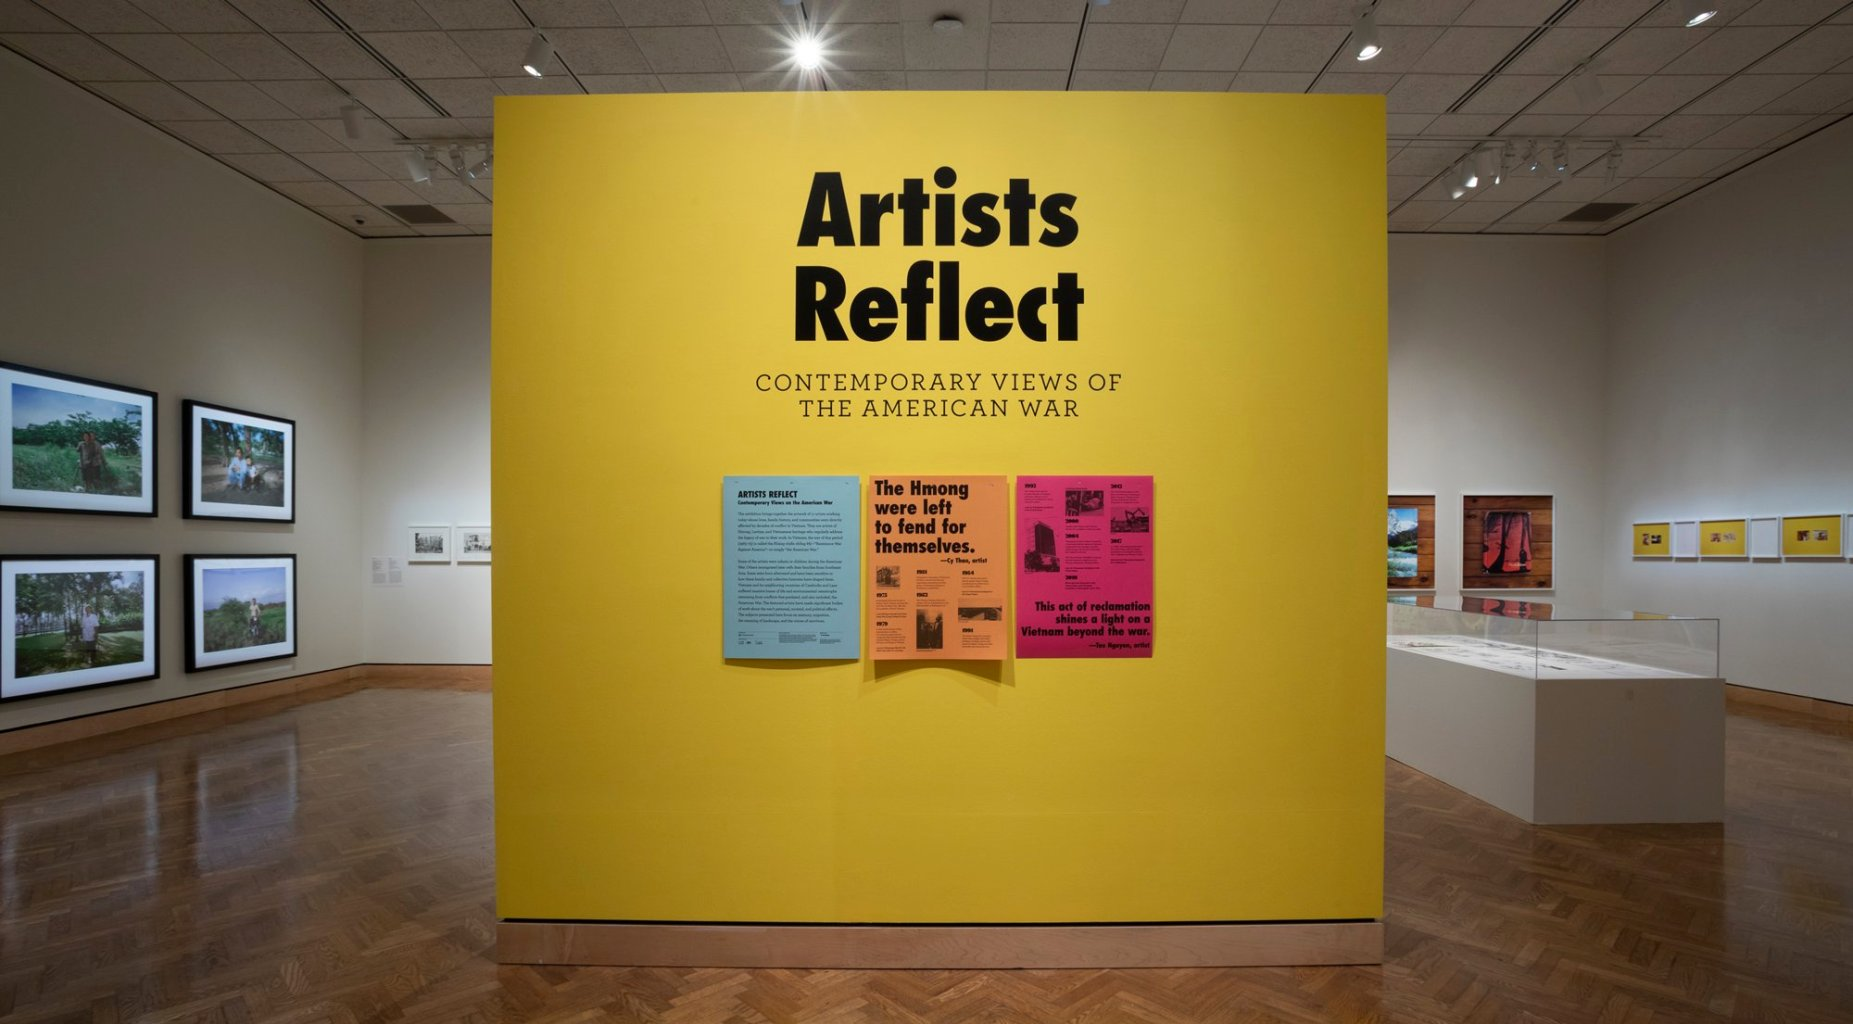 """A title wall for the """"Artists Reflect: Contemporary Views of the American War"""" exhibition, with a timeline and quotes reading """"The Hmong were left to fend for themselves"""" and """"This act of reclamation shines a light on a Vietnam beyond the war."""""""